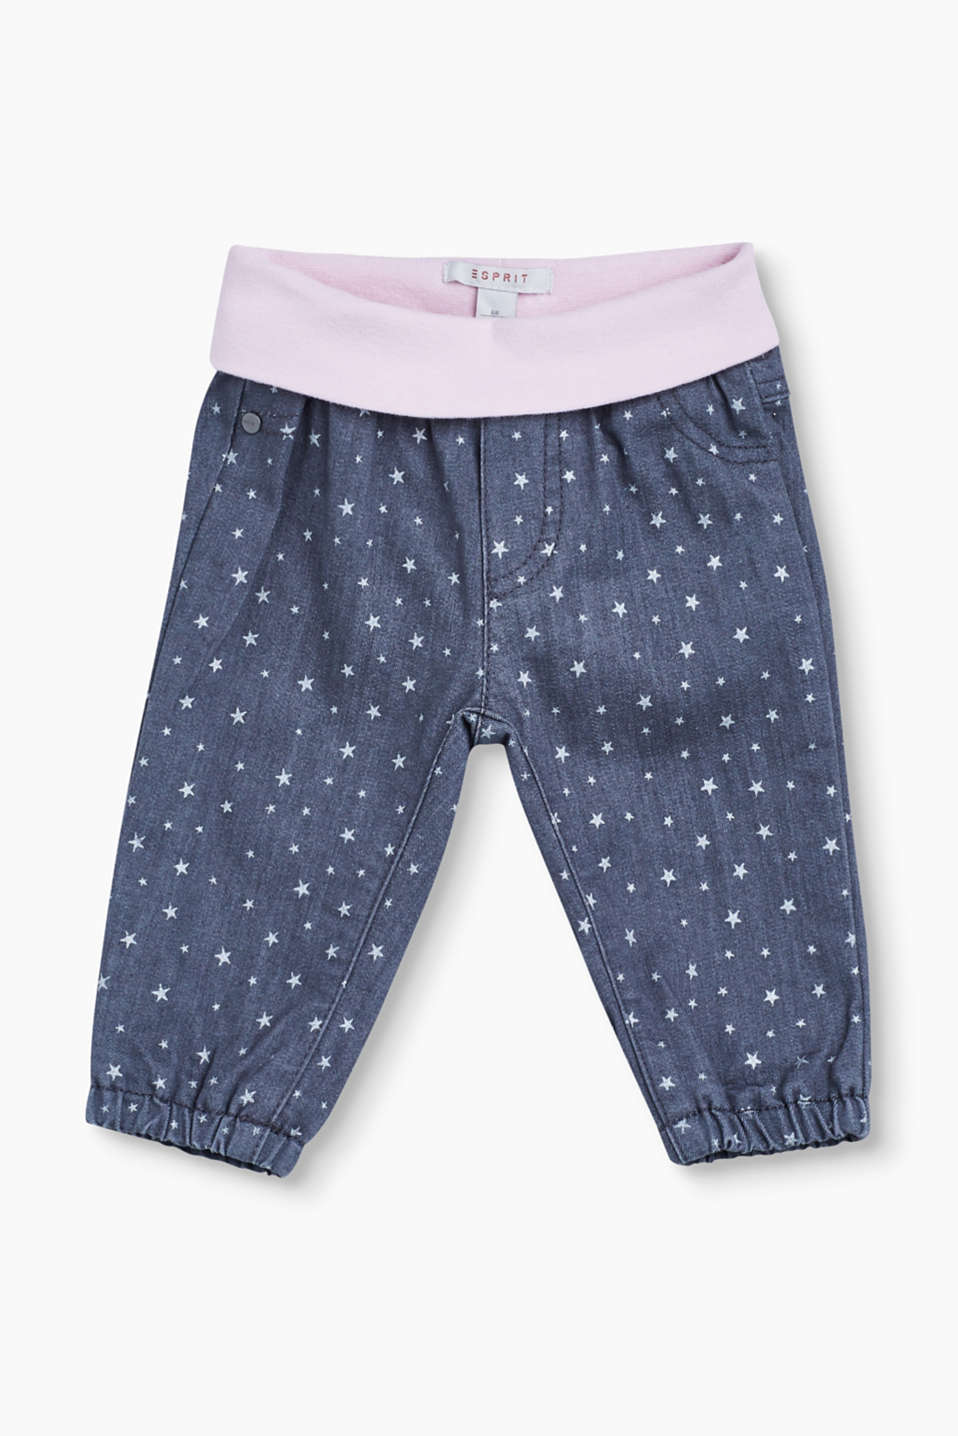 Cute star style for baby girls: The little ones are sure to look like super stars in these soft jeans!